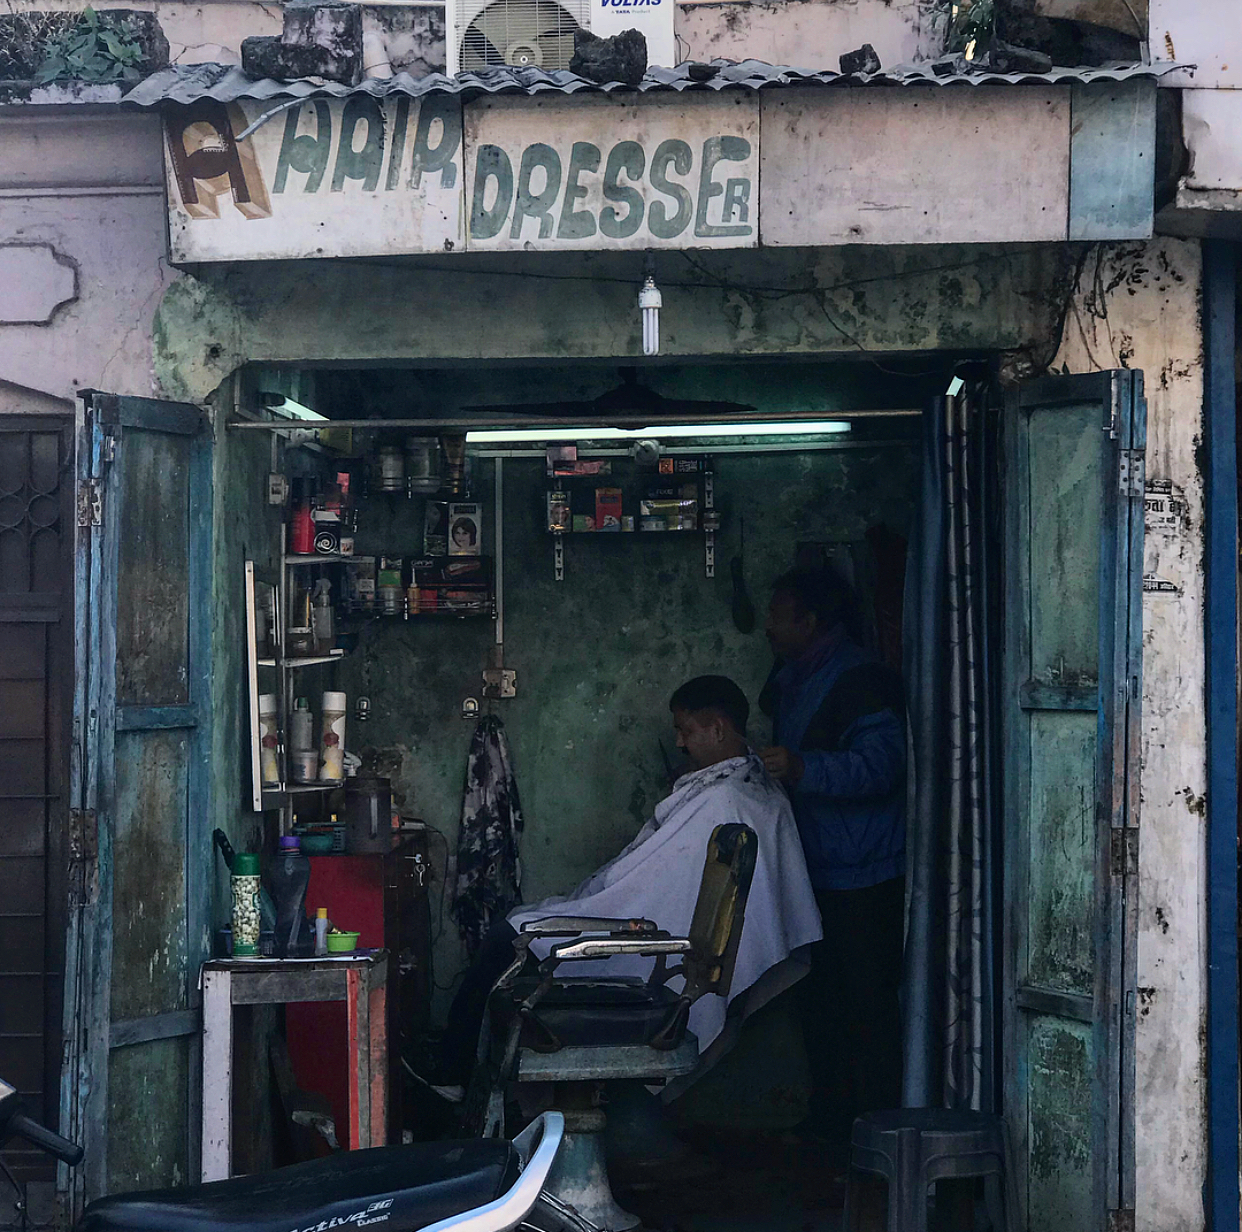 This is what the hairdressers/barbers look like here in India. It's crazy how much we take for granted in the West.